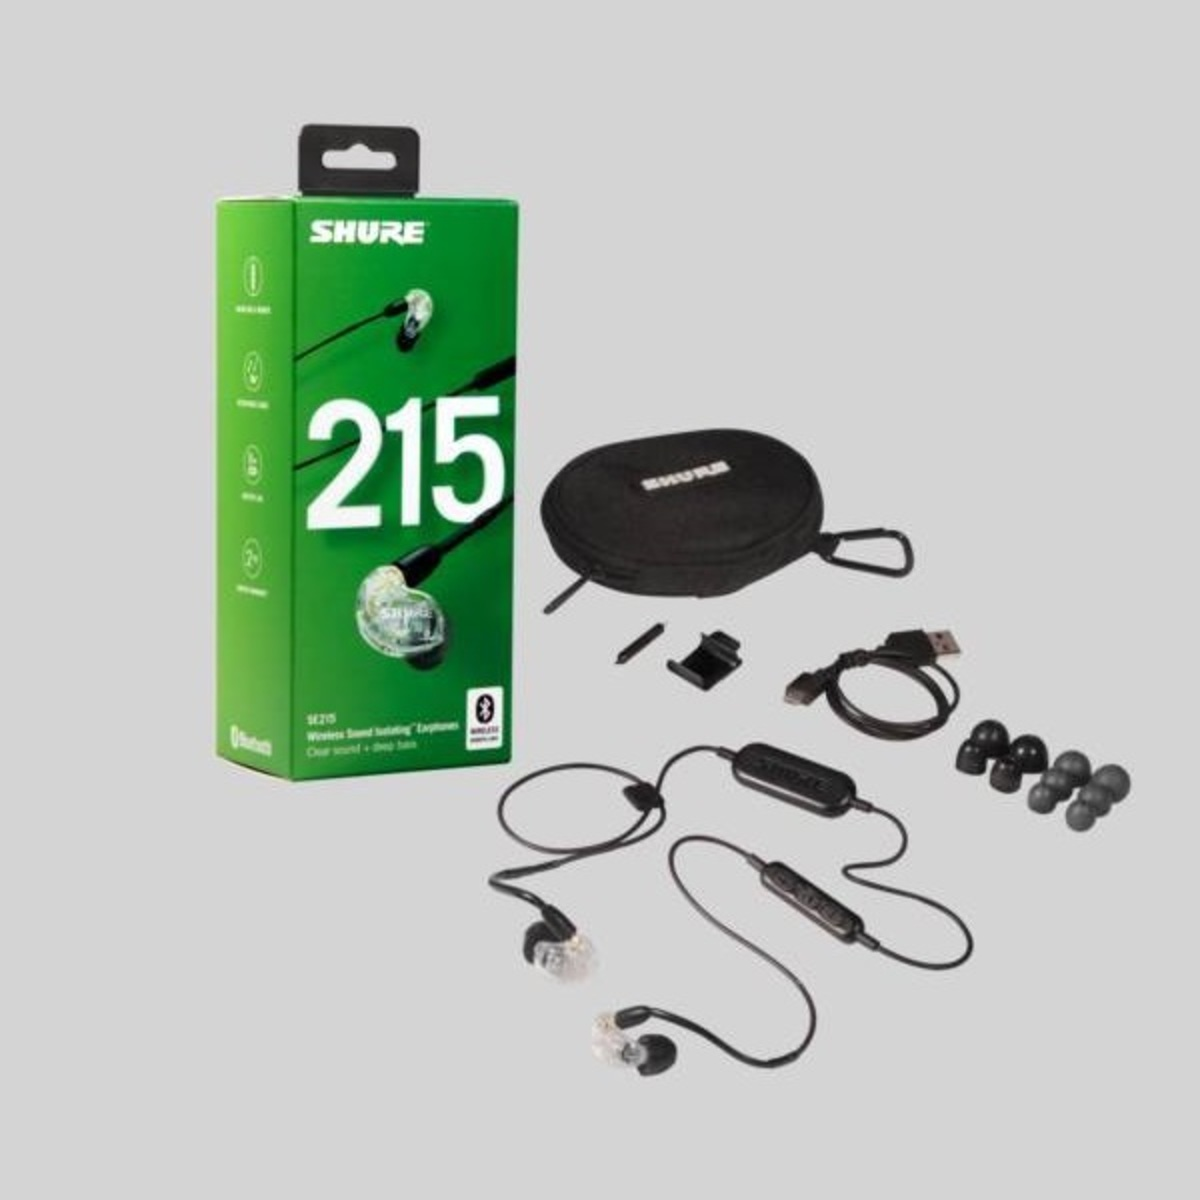 SHURE | SE215 Sound Isolating Bluetooth Earphones with RMCE-BT1